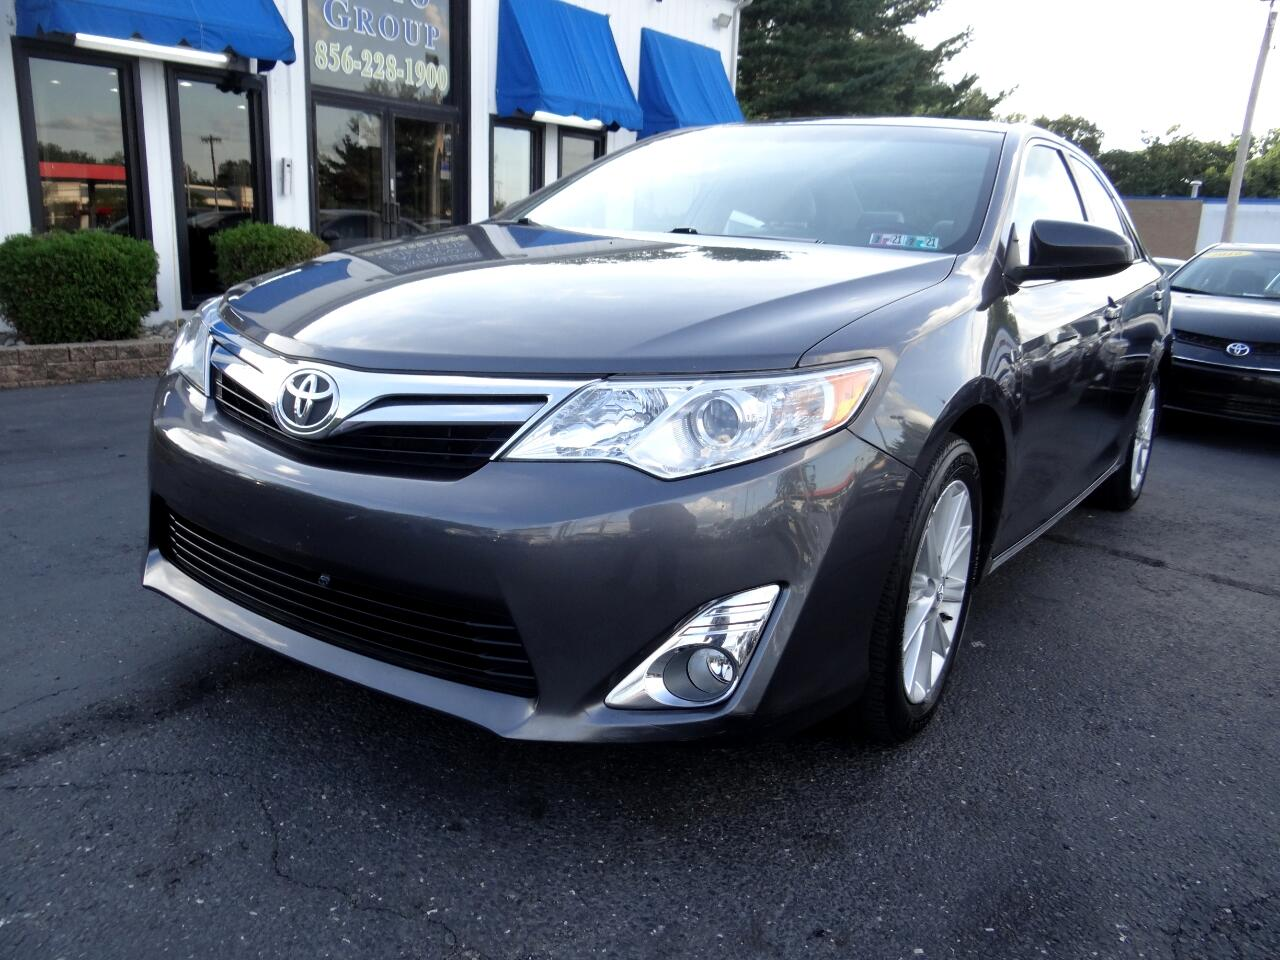 Toyota Camry 4dr Sdn I4 Auto XLE (Natl) *Ltd Avail* 2014